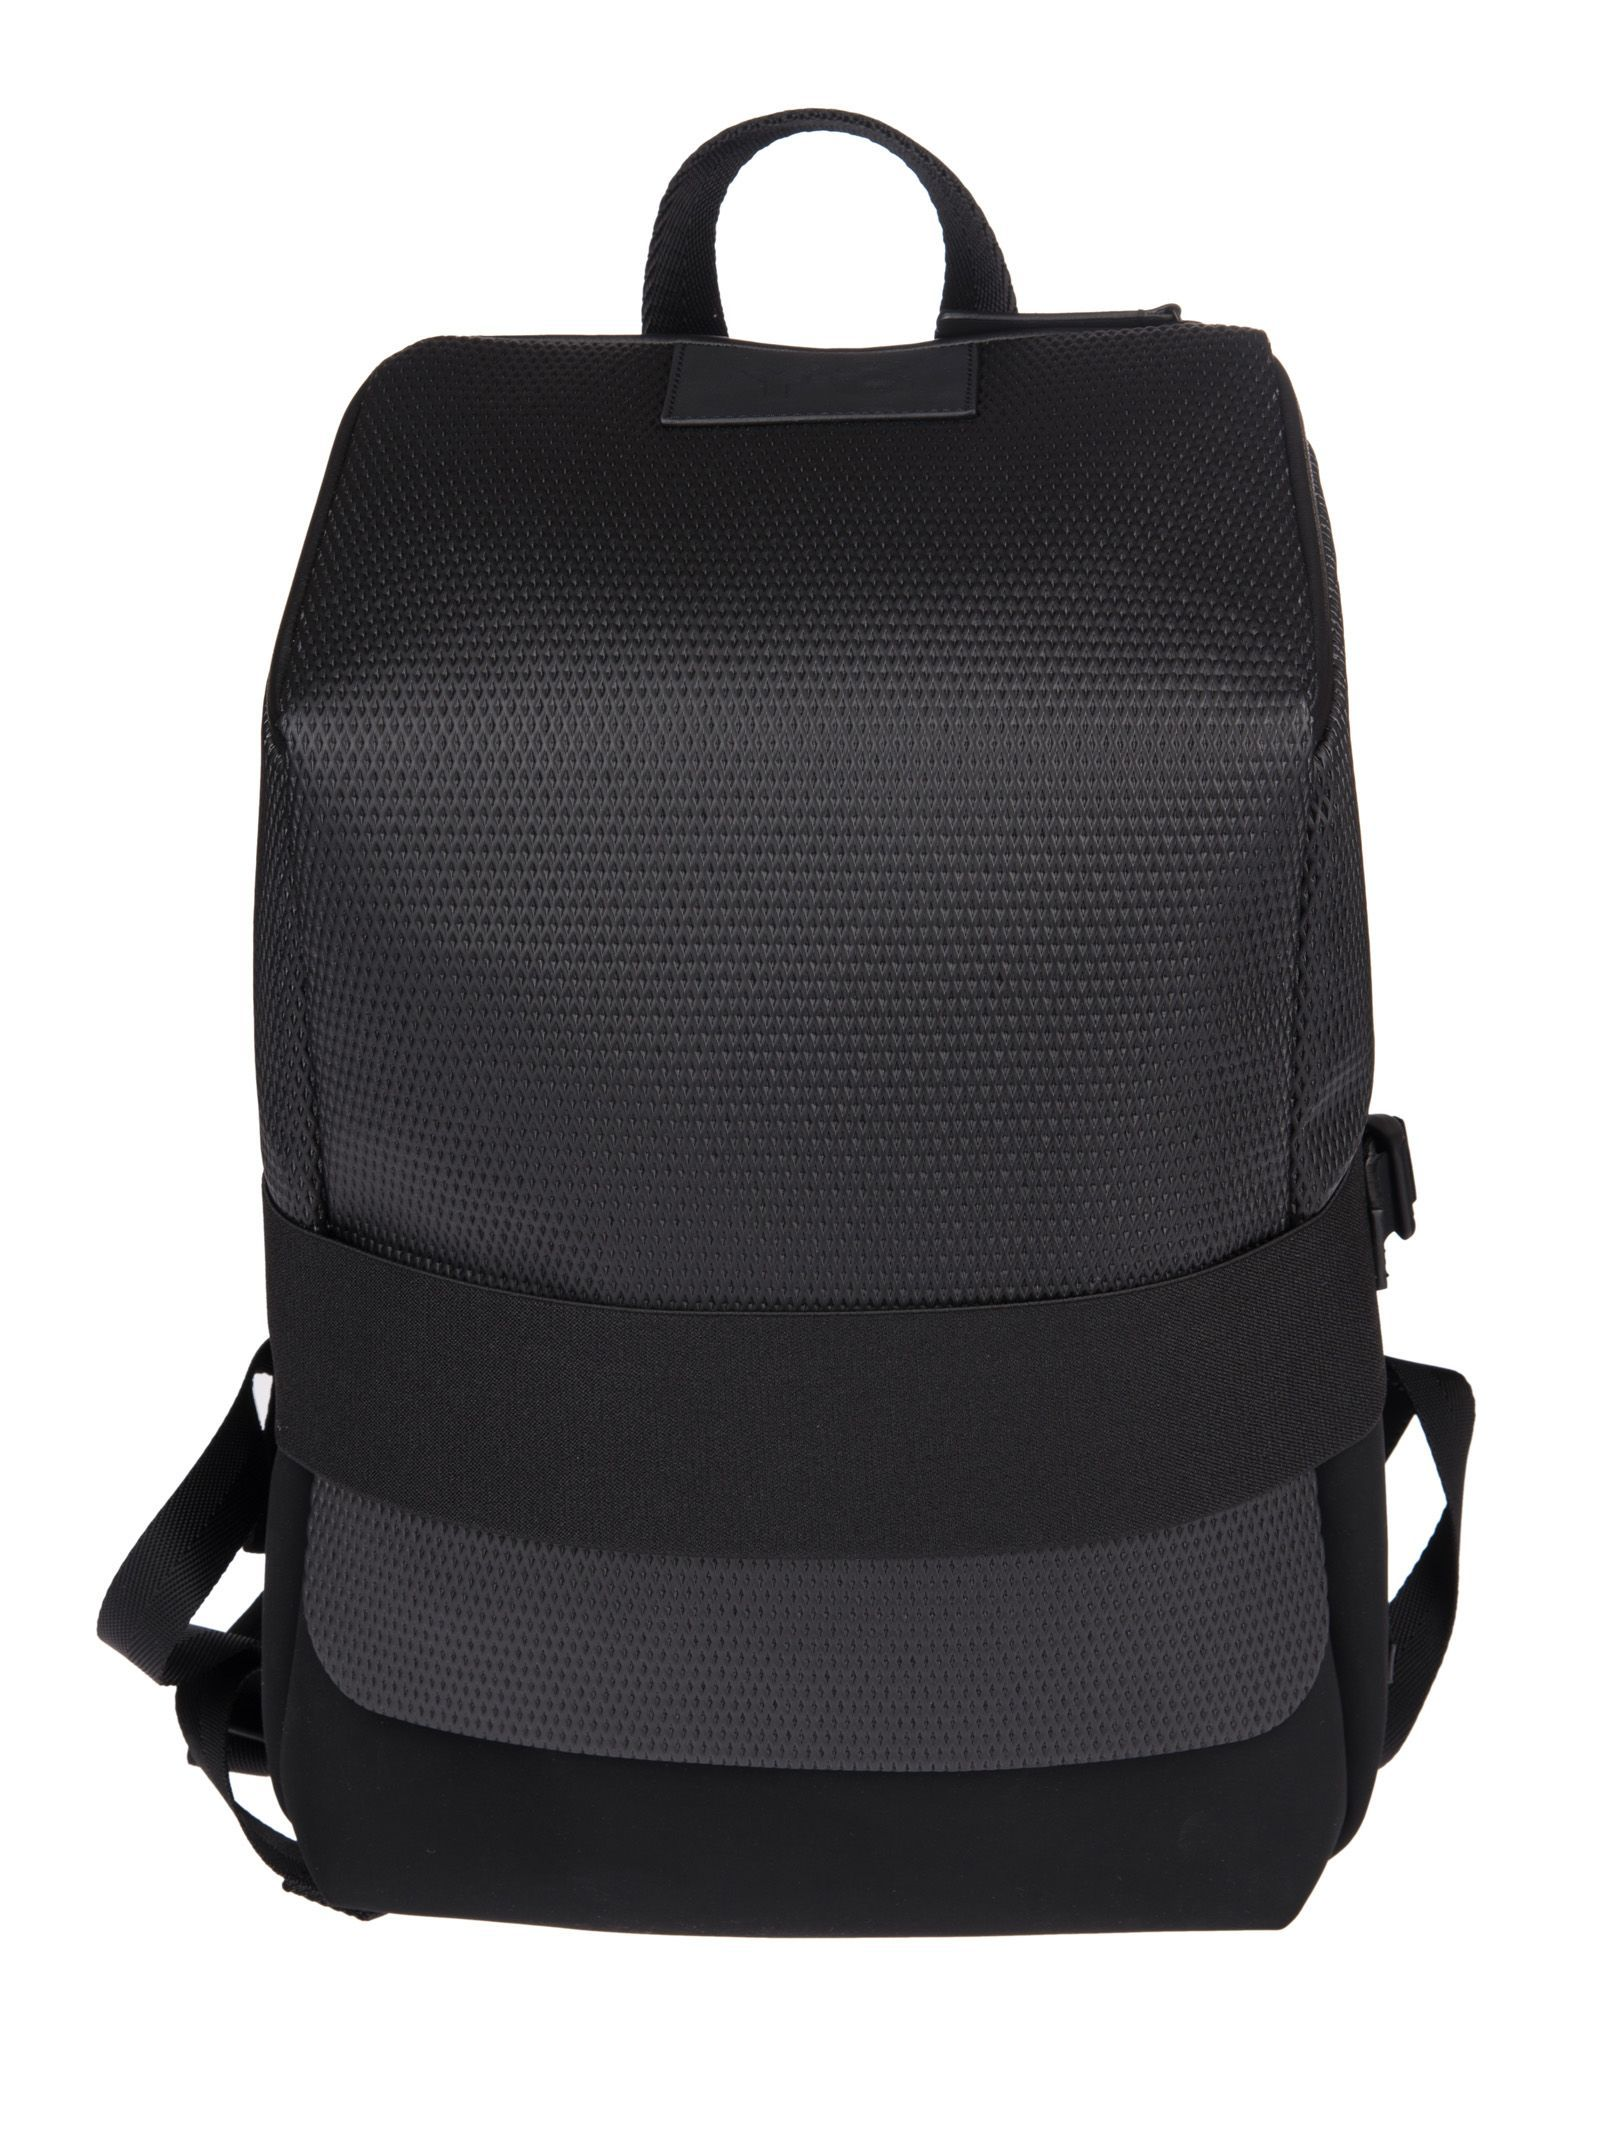 7da4069ce0 Y-3 QASA AIR BACKPACK.  y-3  bags  backpacks